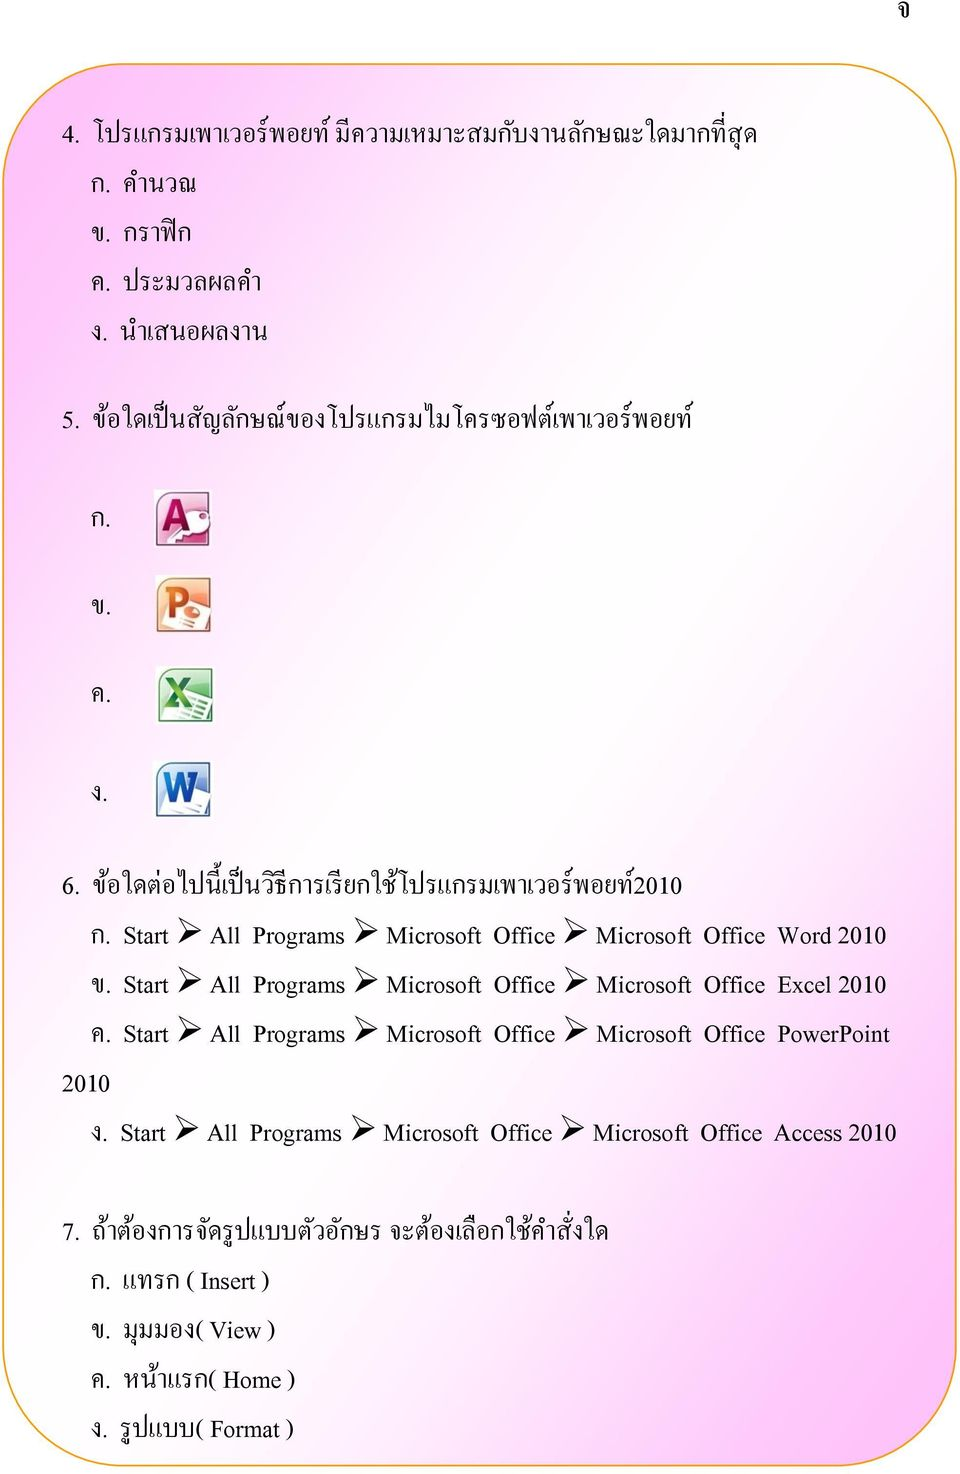 Start All Programs Microsoft Office Microsoft Office Word 2010 ข. Start All Programs Microsoft Office Microsoft Office Excel 2010 ค.